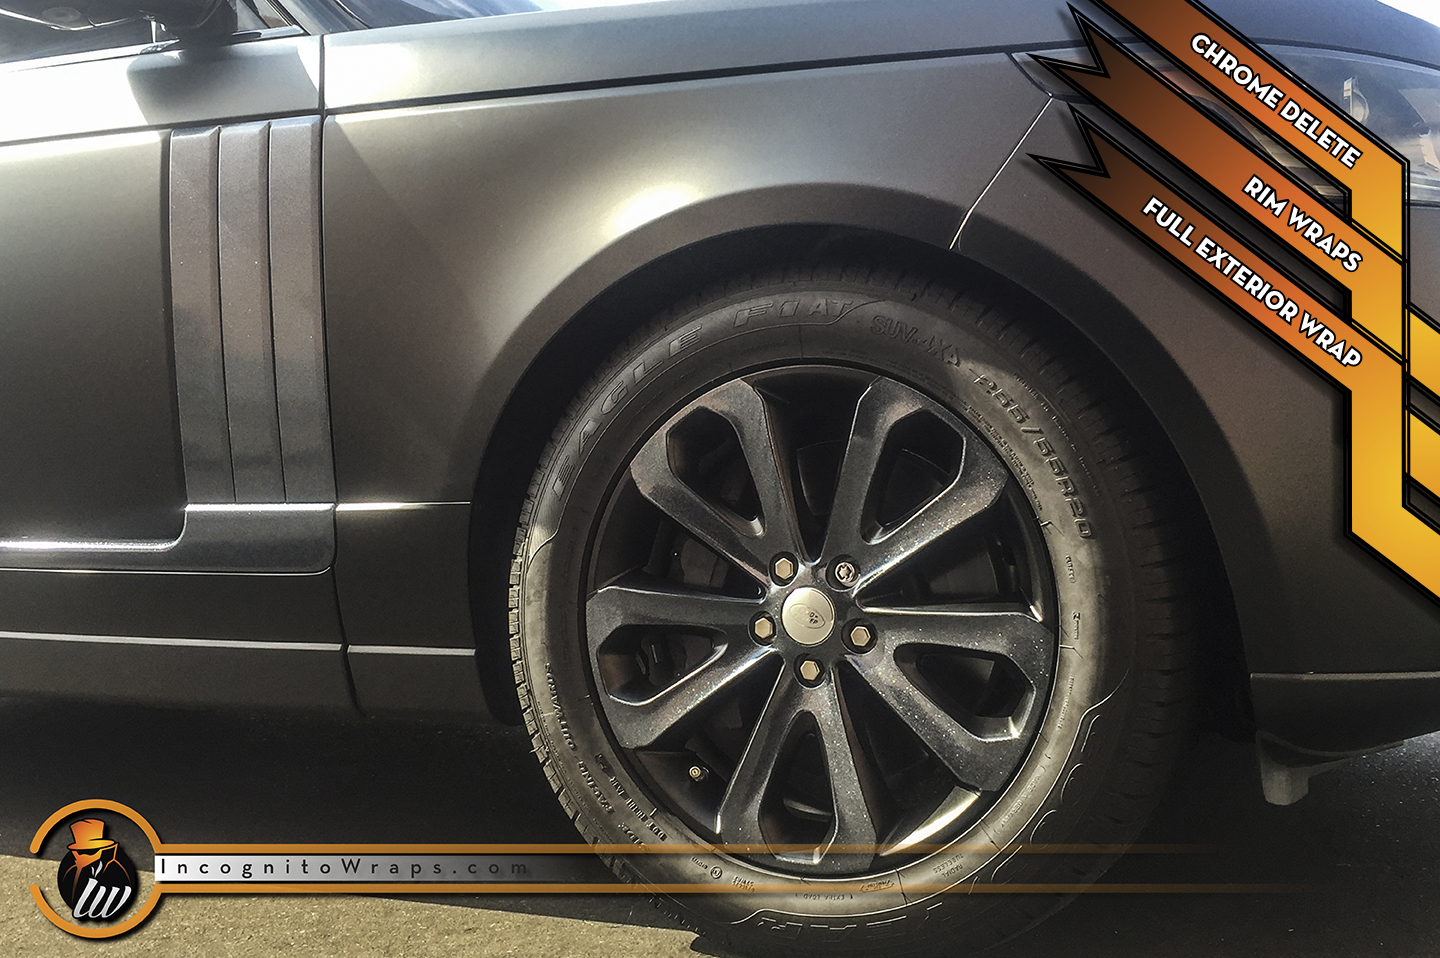 Range Rover - Satin Black with Black Galaxy Accents